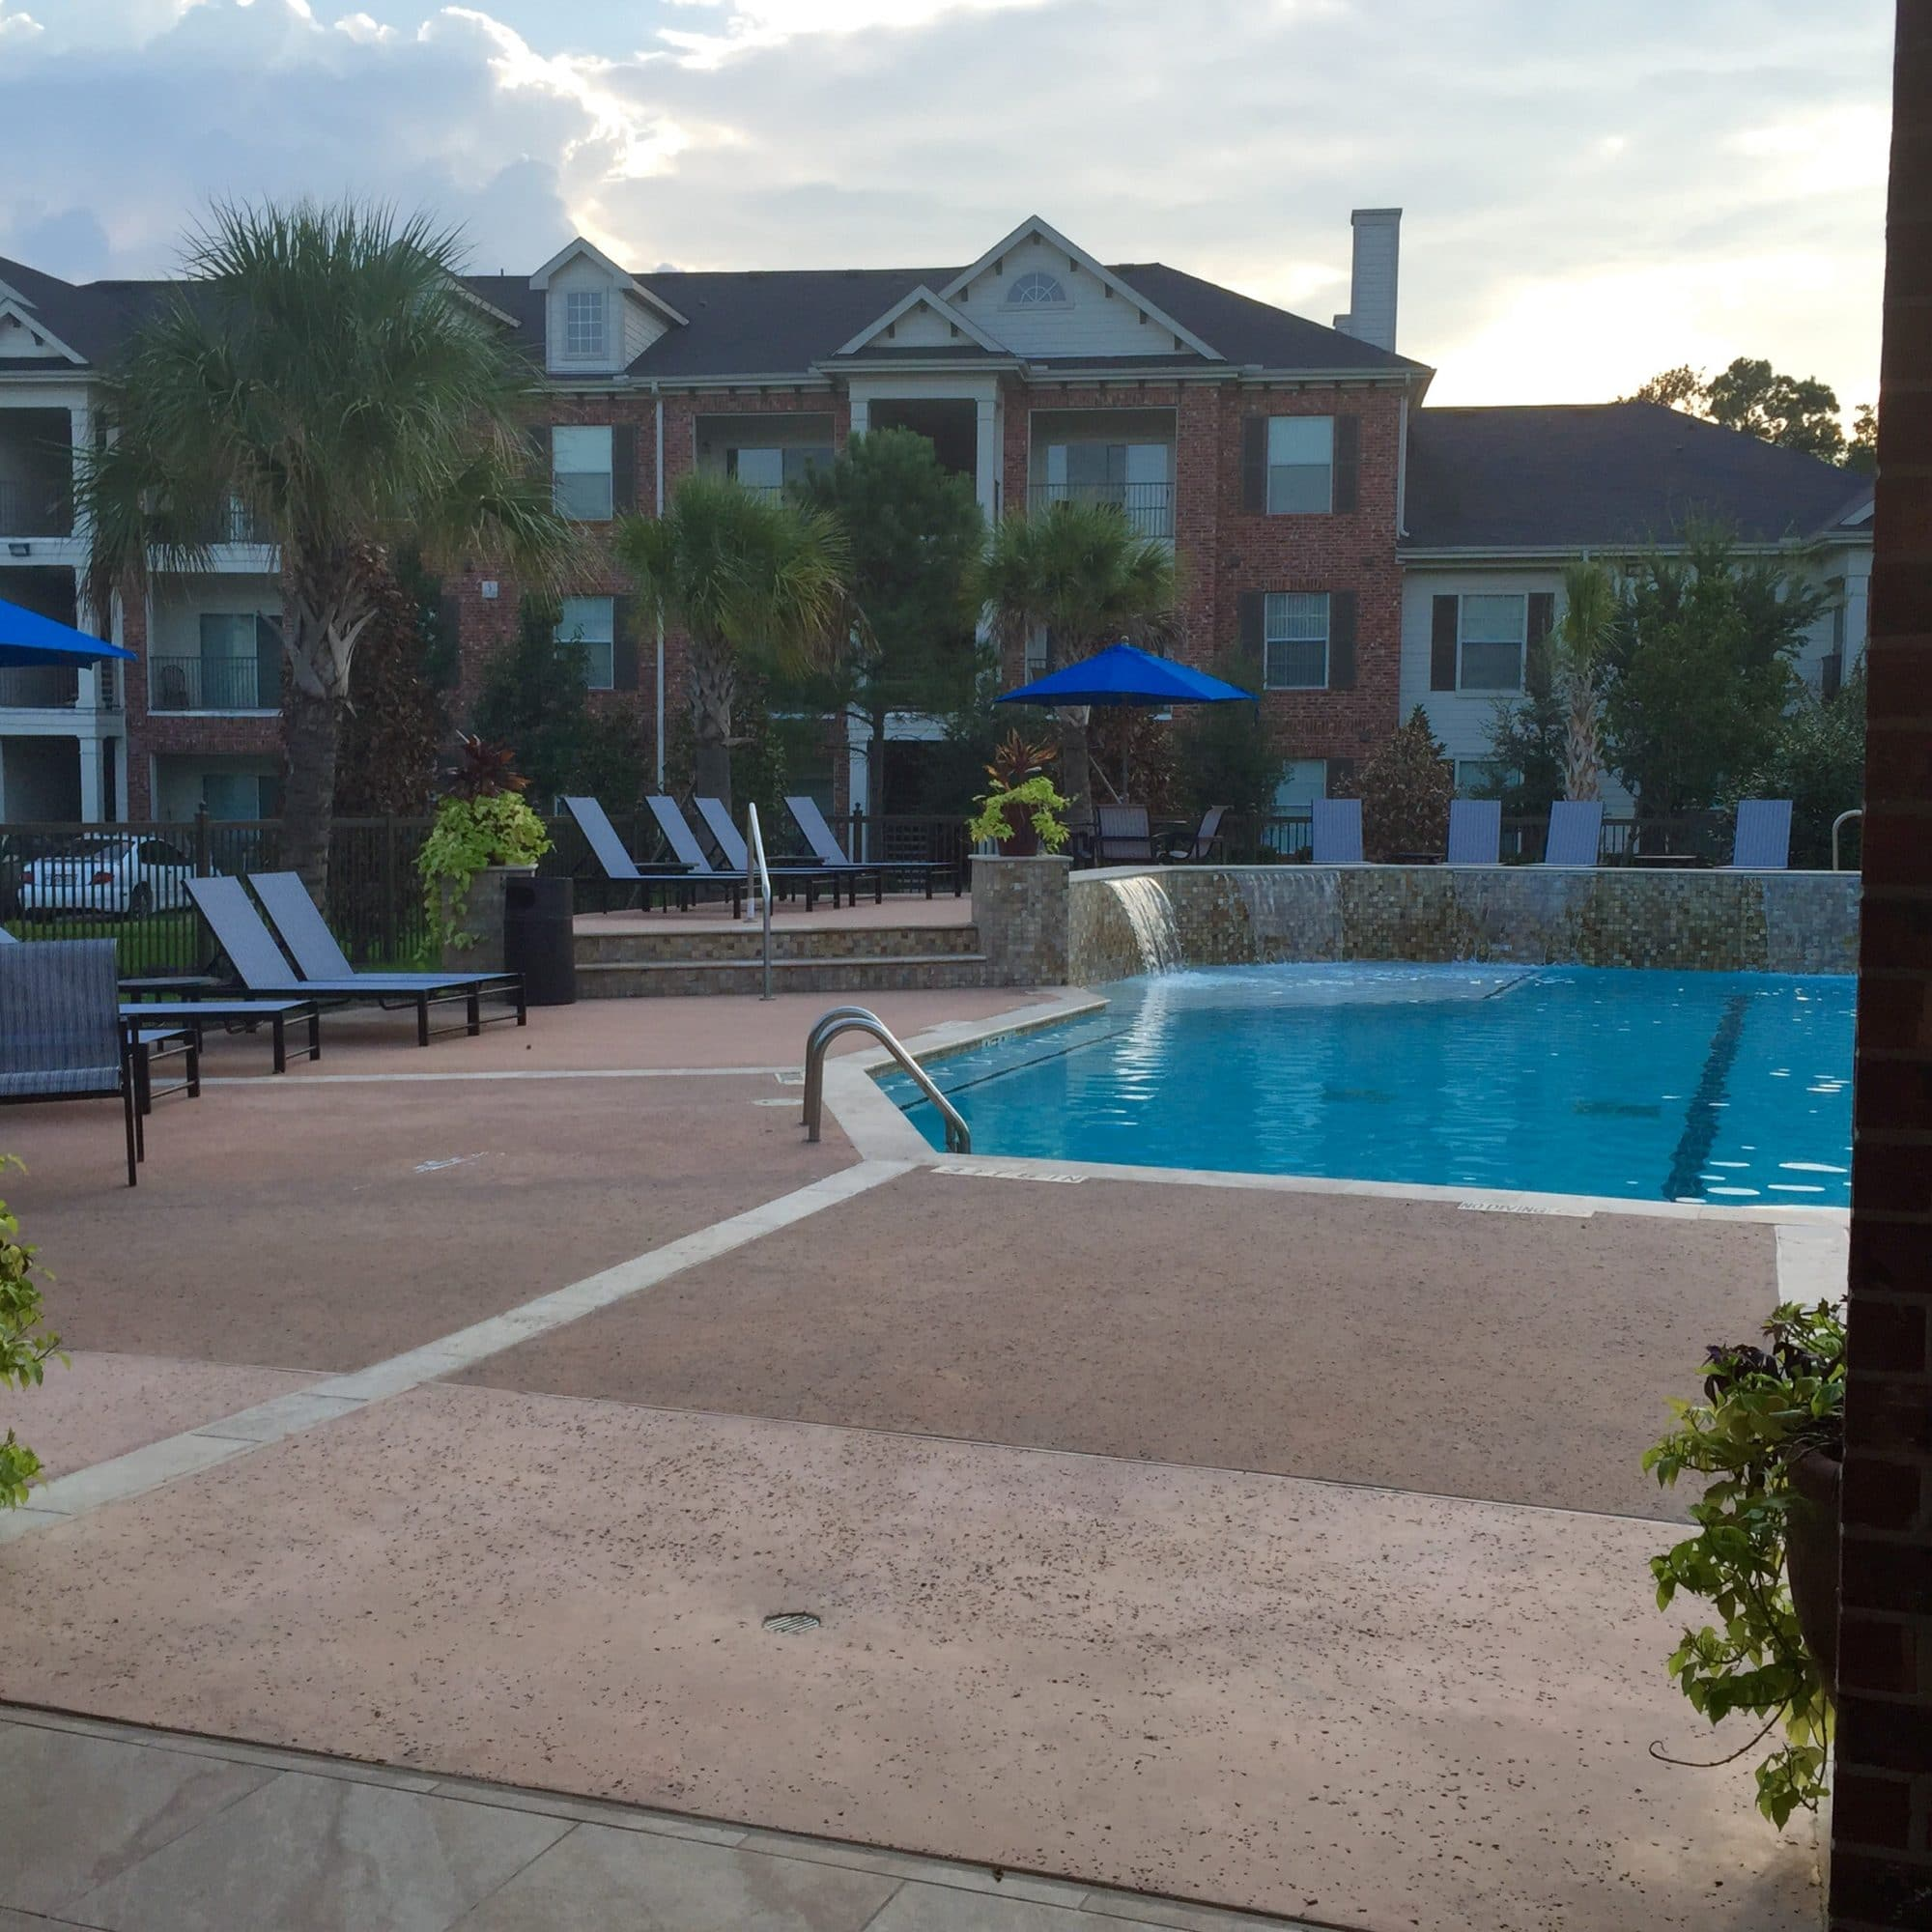 Apartments In The Area: Riverwood Apartments Conroe